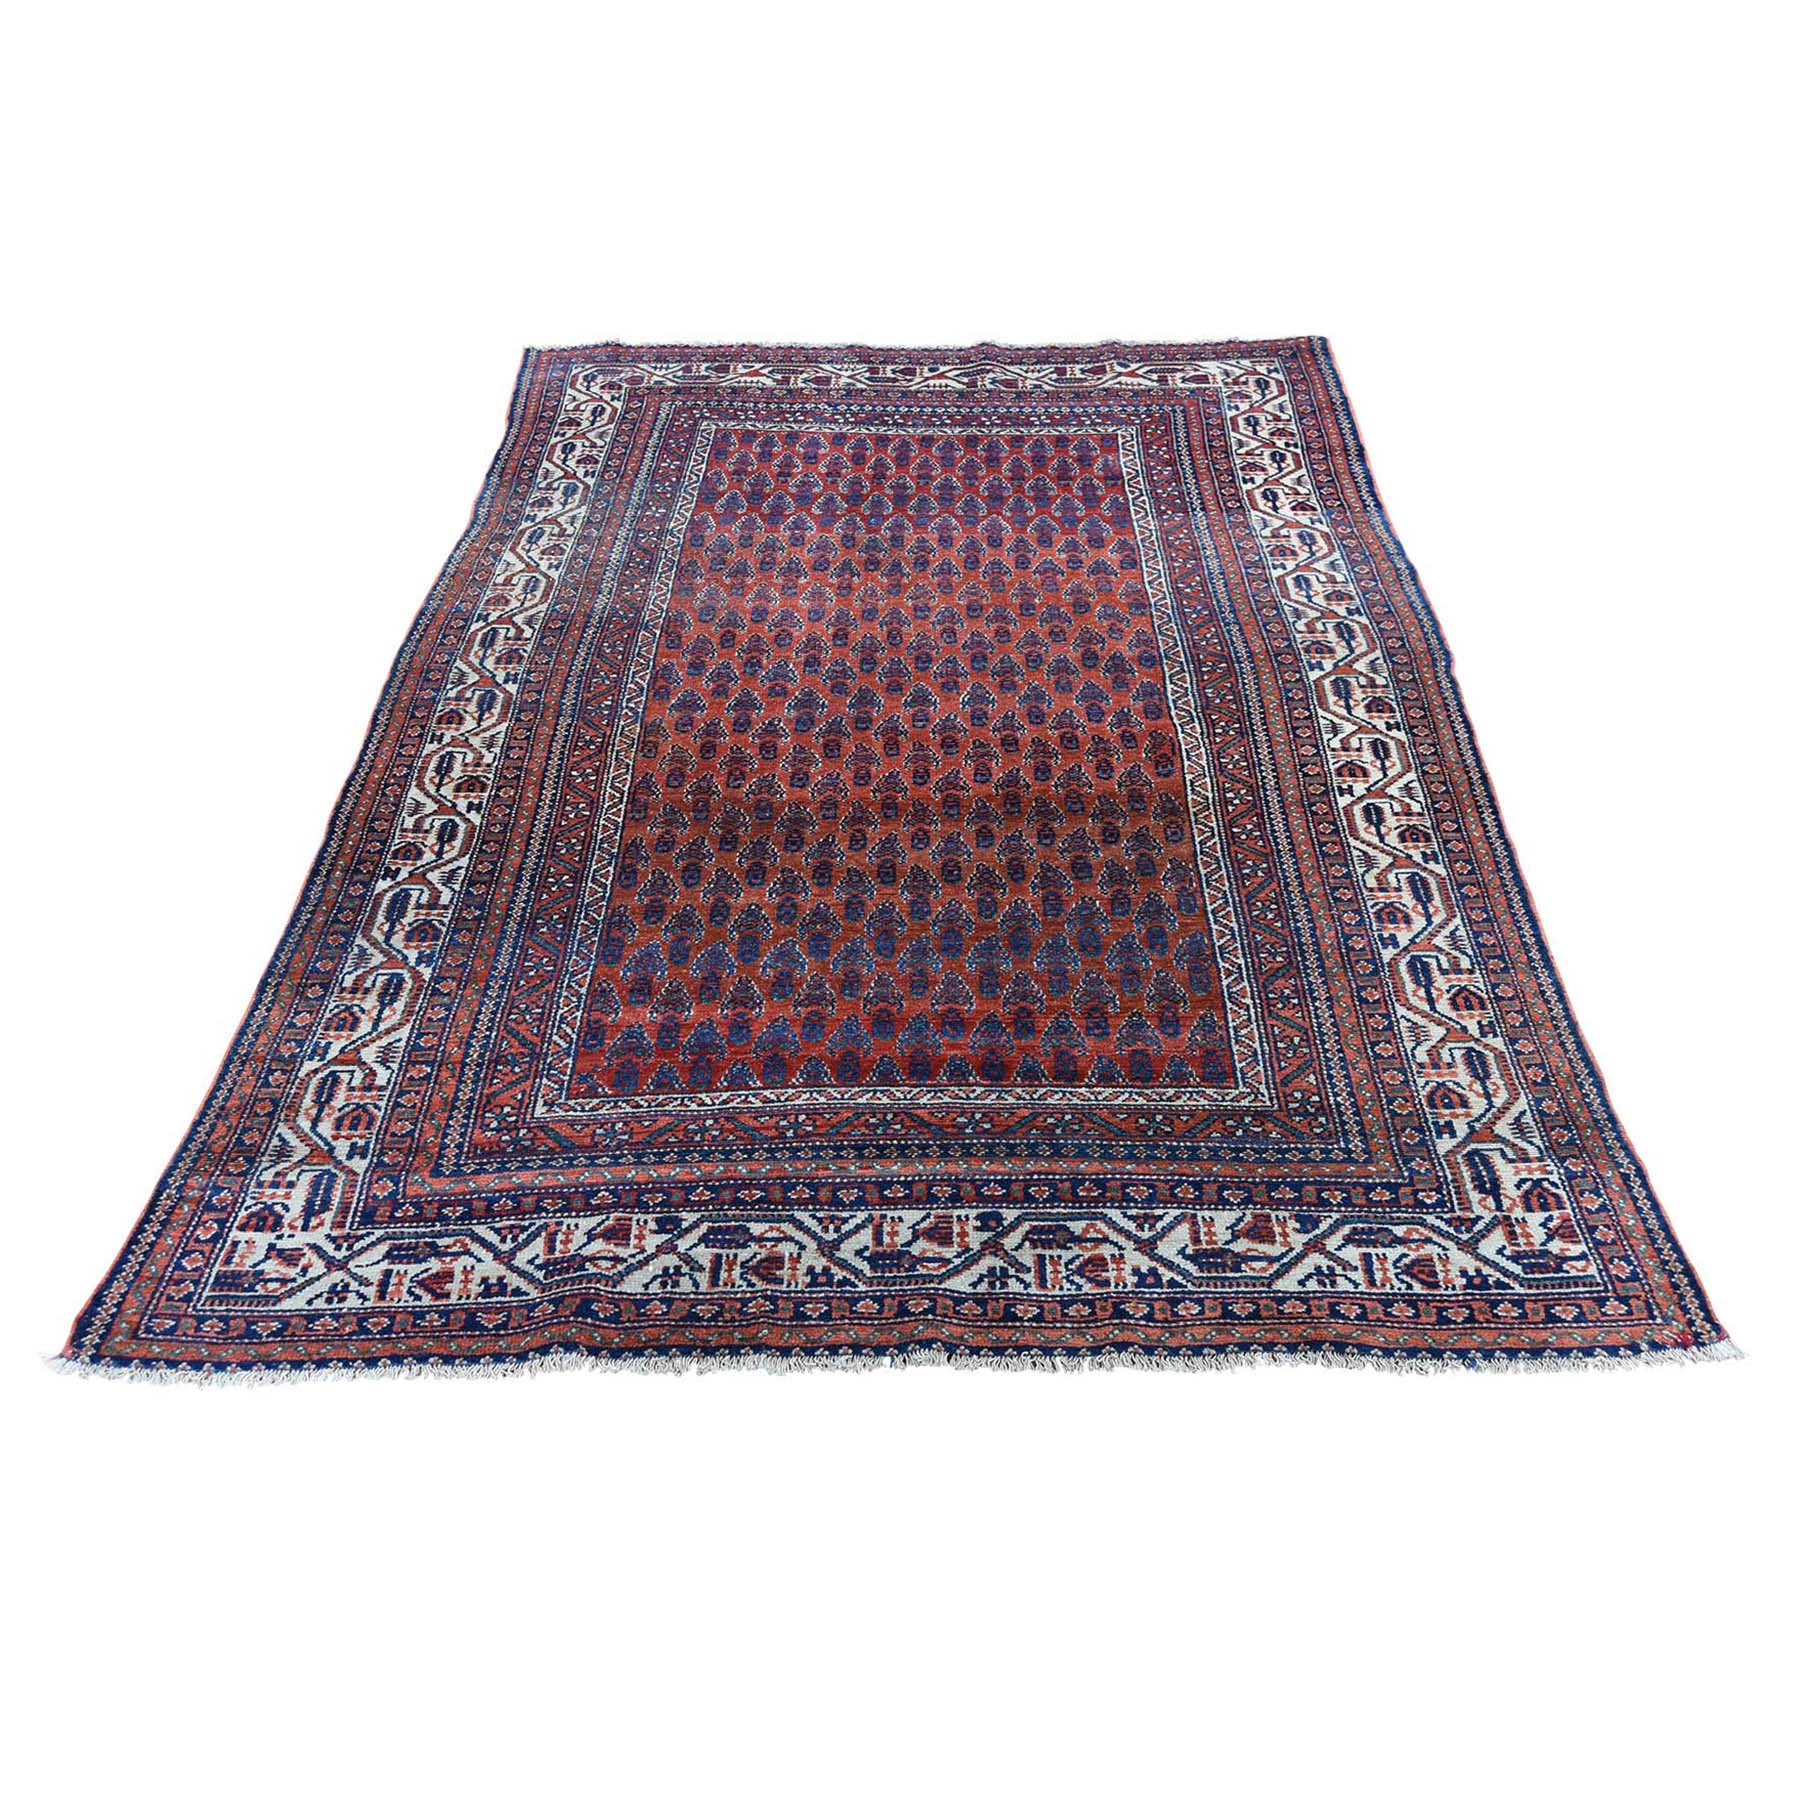 """4'5""""X6'5"""" Antique Persian Seraban Good Condition Even Wear Pure Wool Hand-Knotted Oriental Rug moad6a9e"""